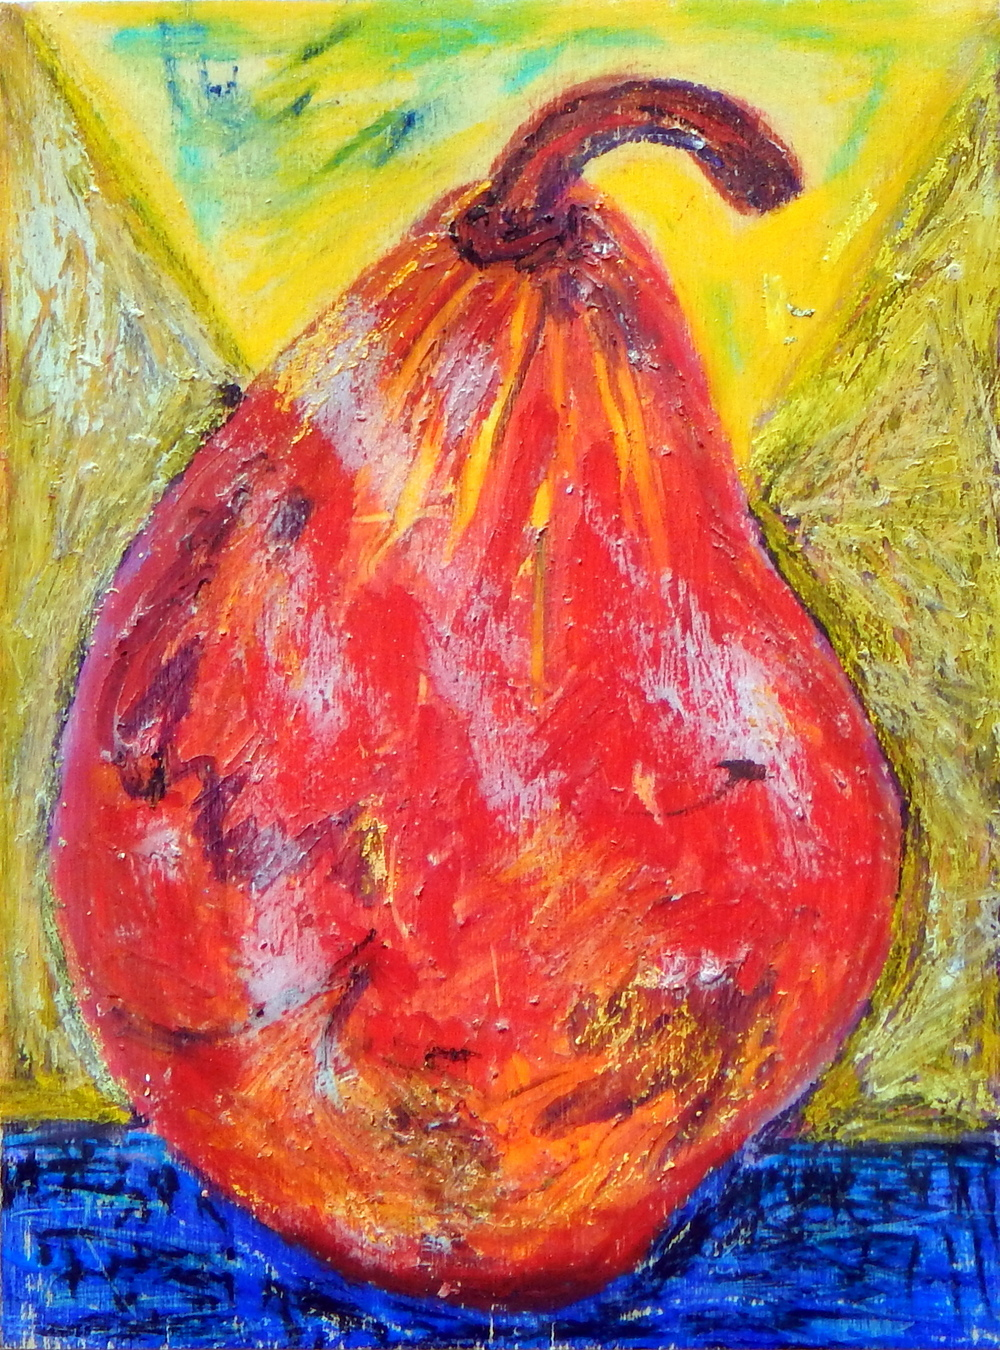 Pears series, oil pastel, oil, 2012